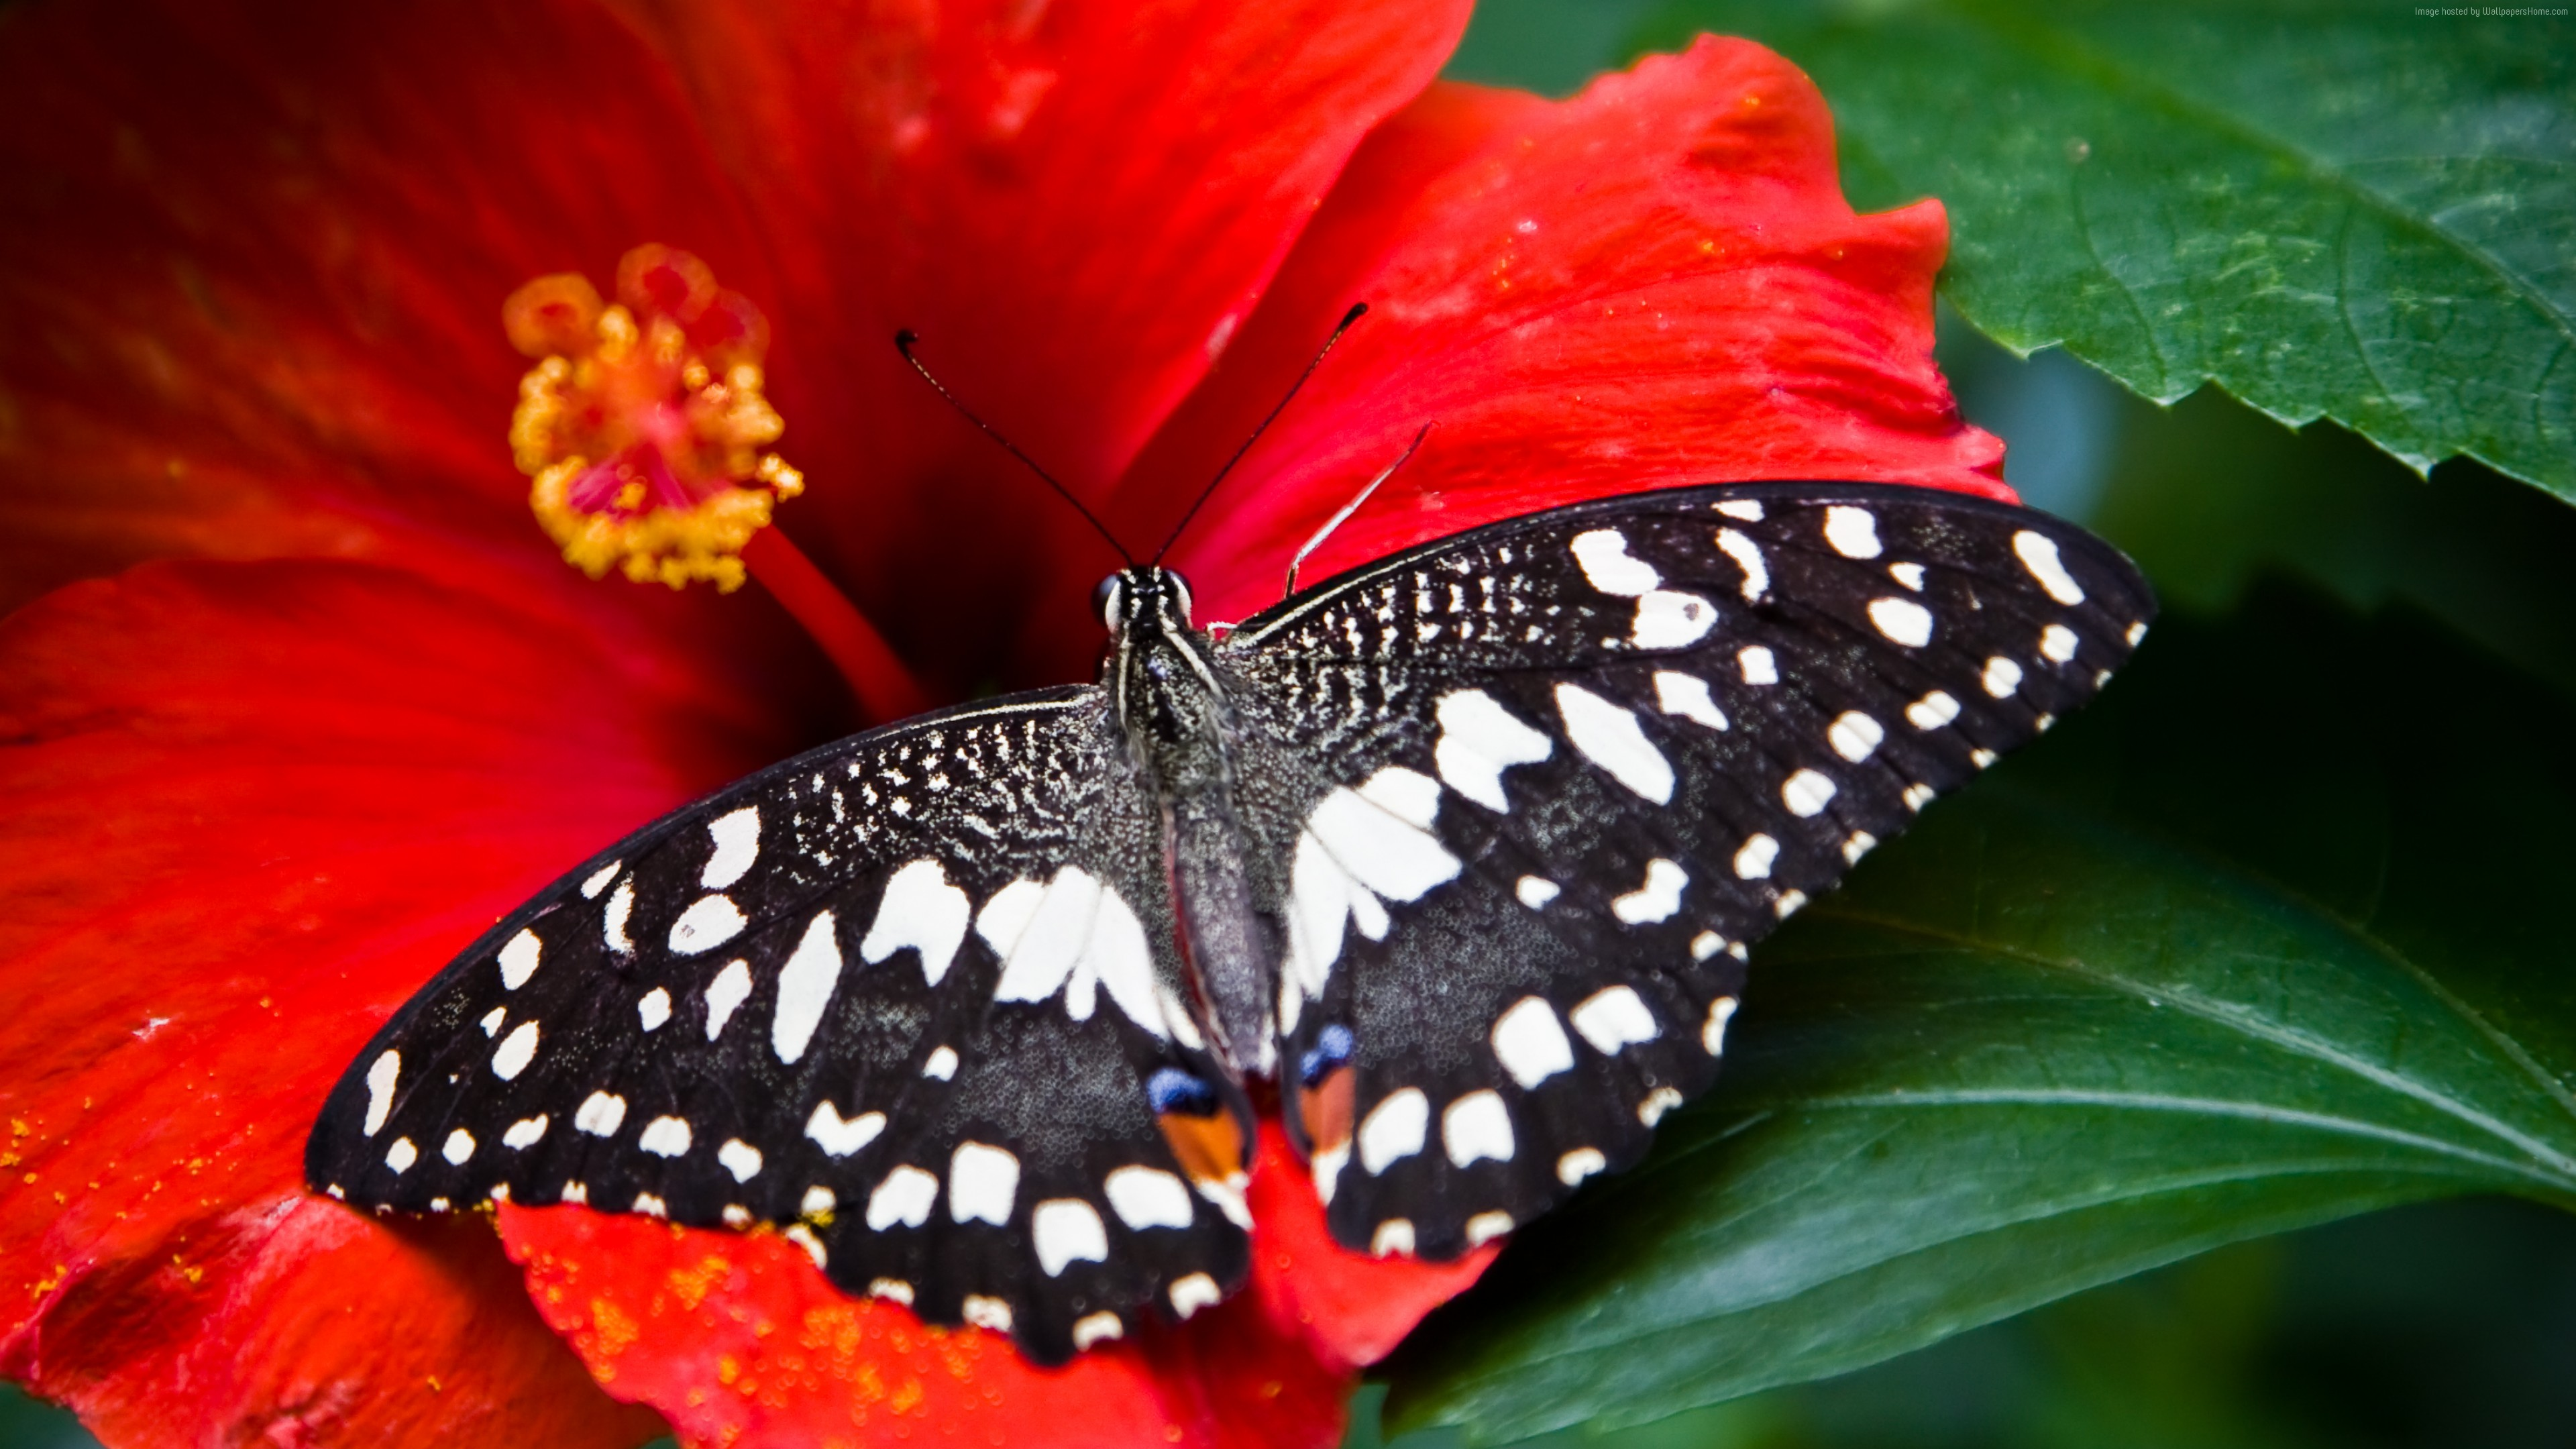 Wallpaper Butterfly, black-white, insects, flowers, Glass, nature, garden, Animals